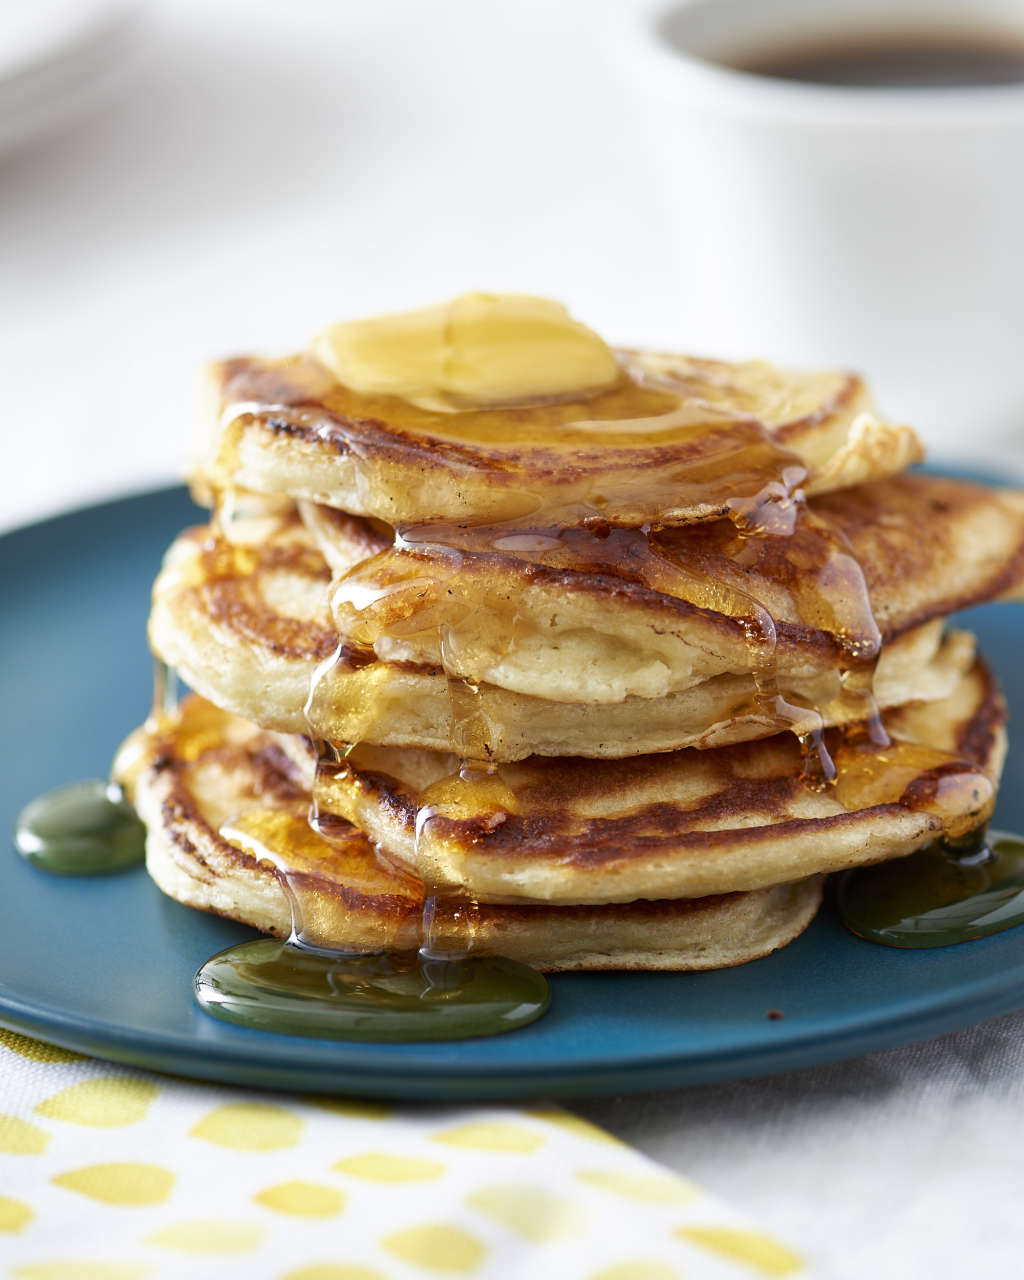 7 Tips I Learned from Making Over 286 Batches of Pancakes